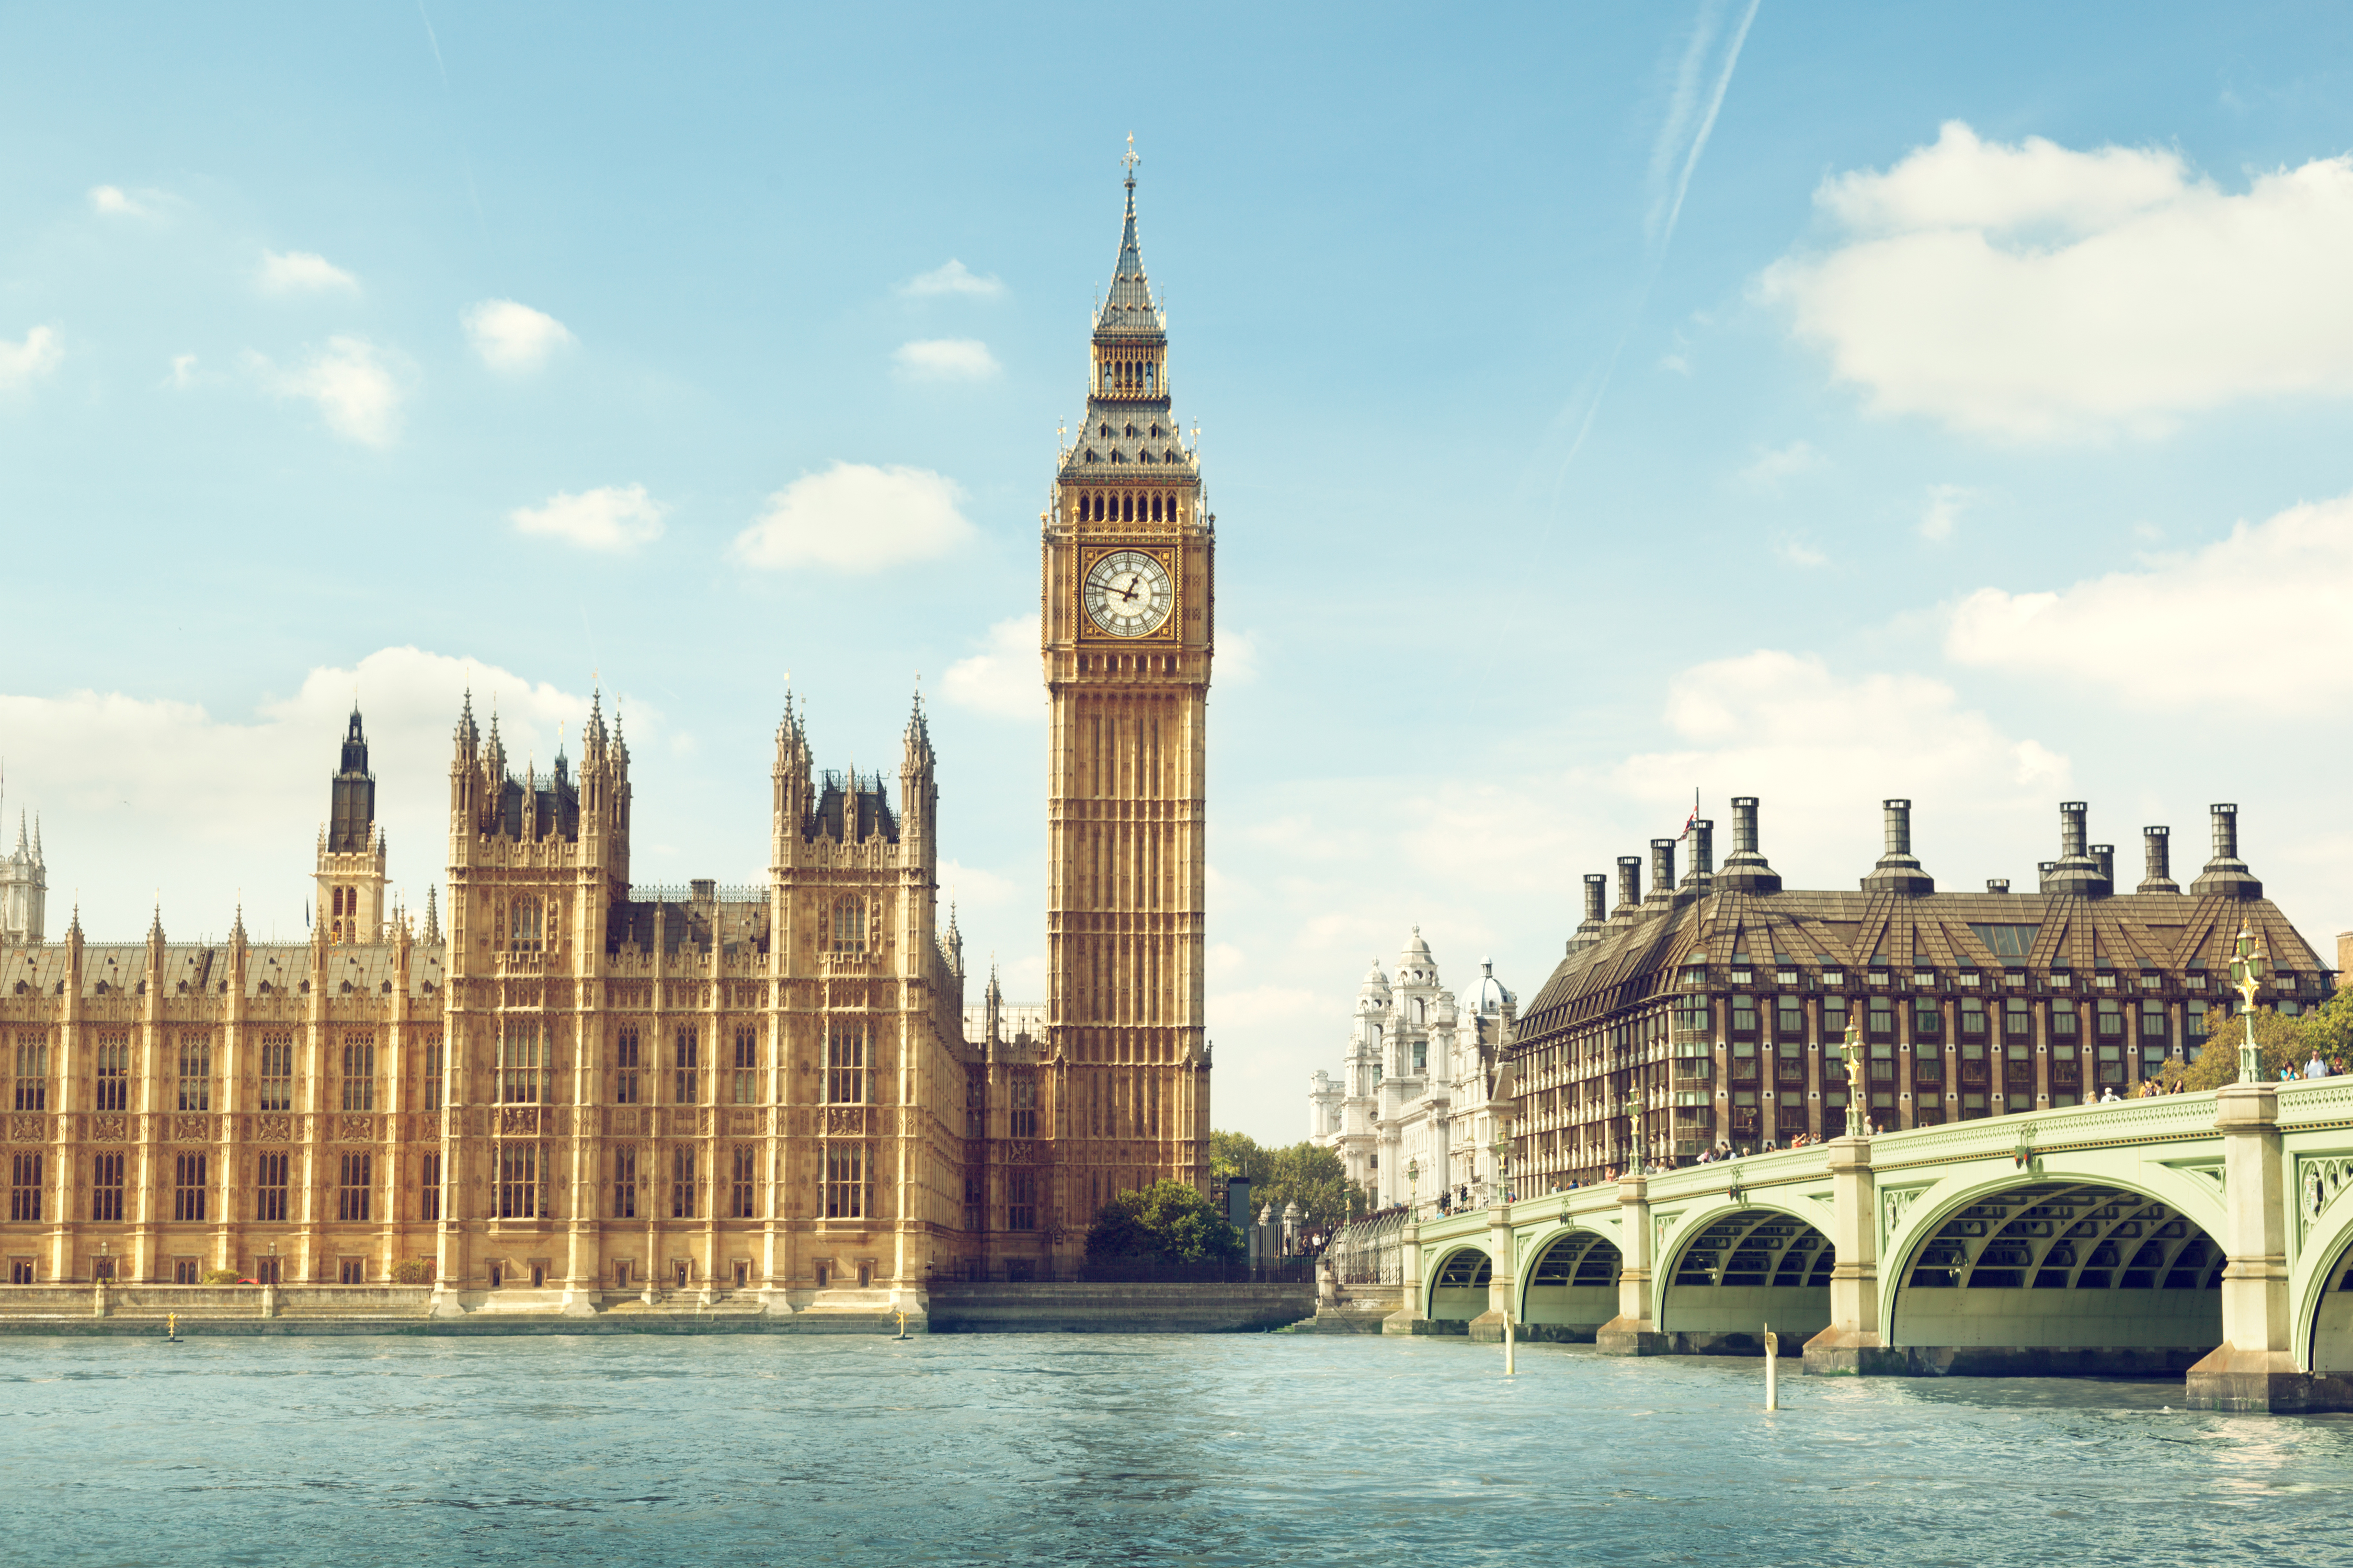 Big ben - purchased from shutterstock